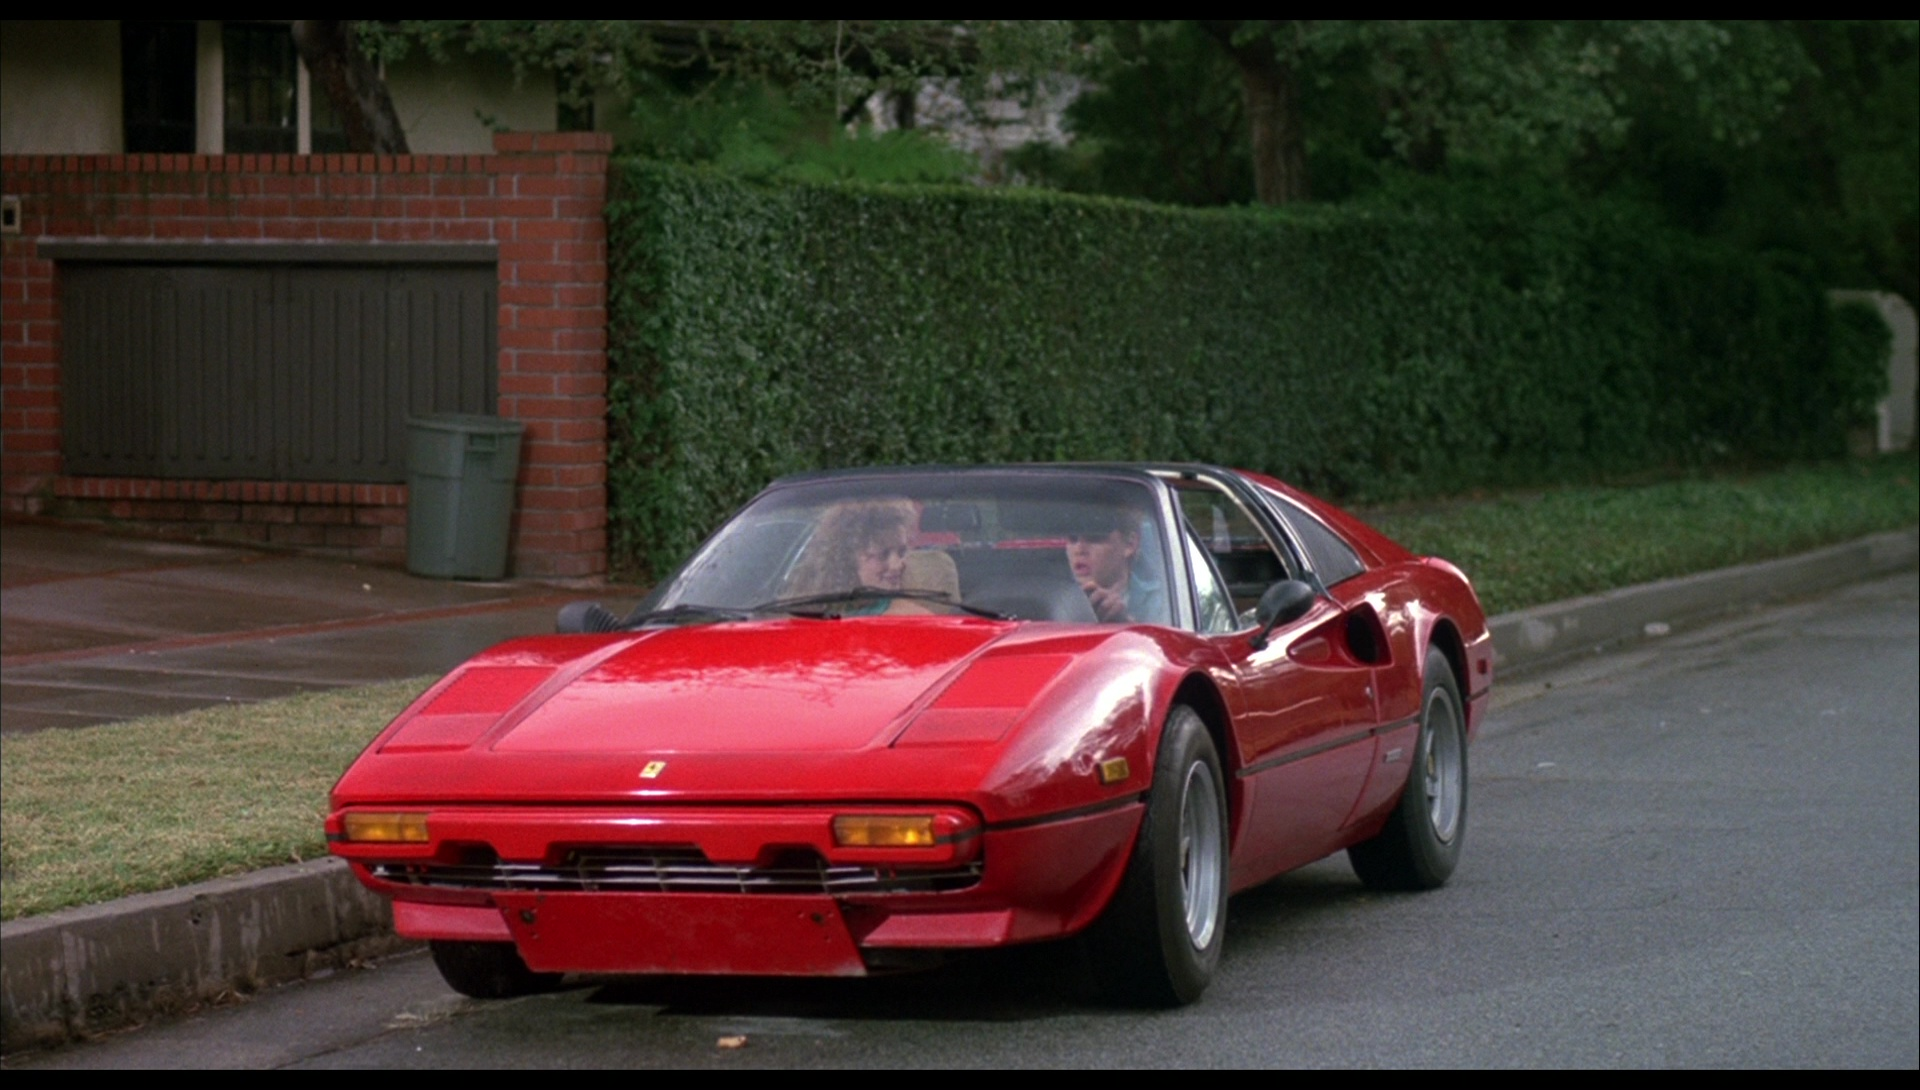 Ferrari 308 Gts Car In License To Drive 1988 Movie